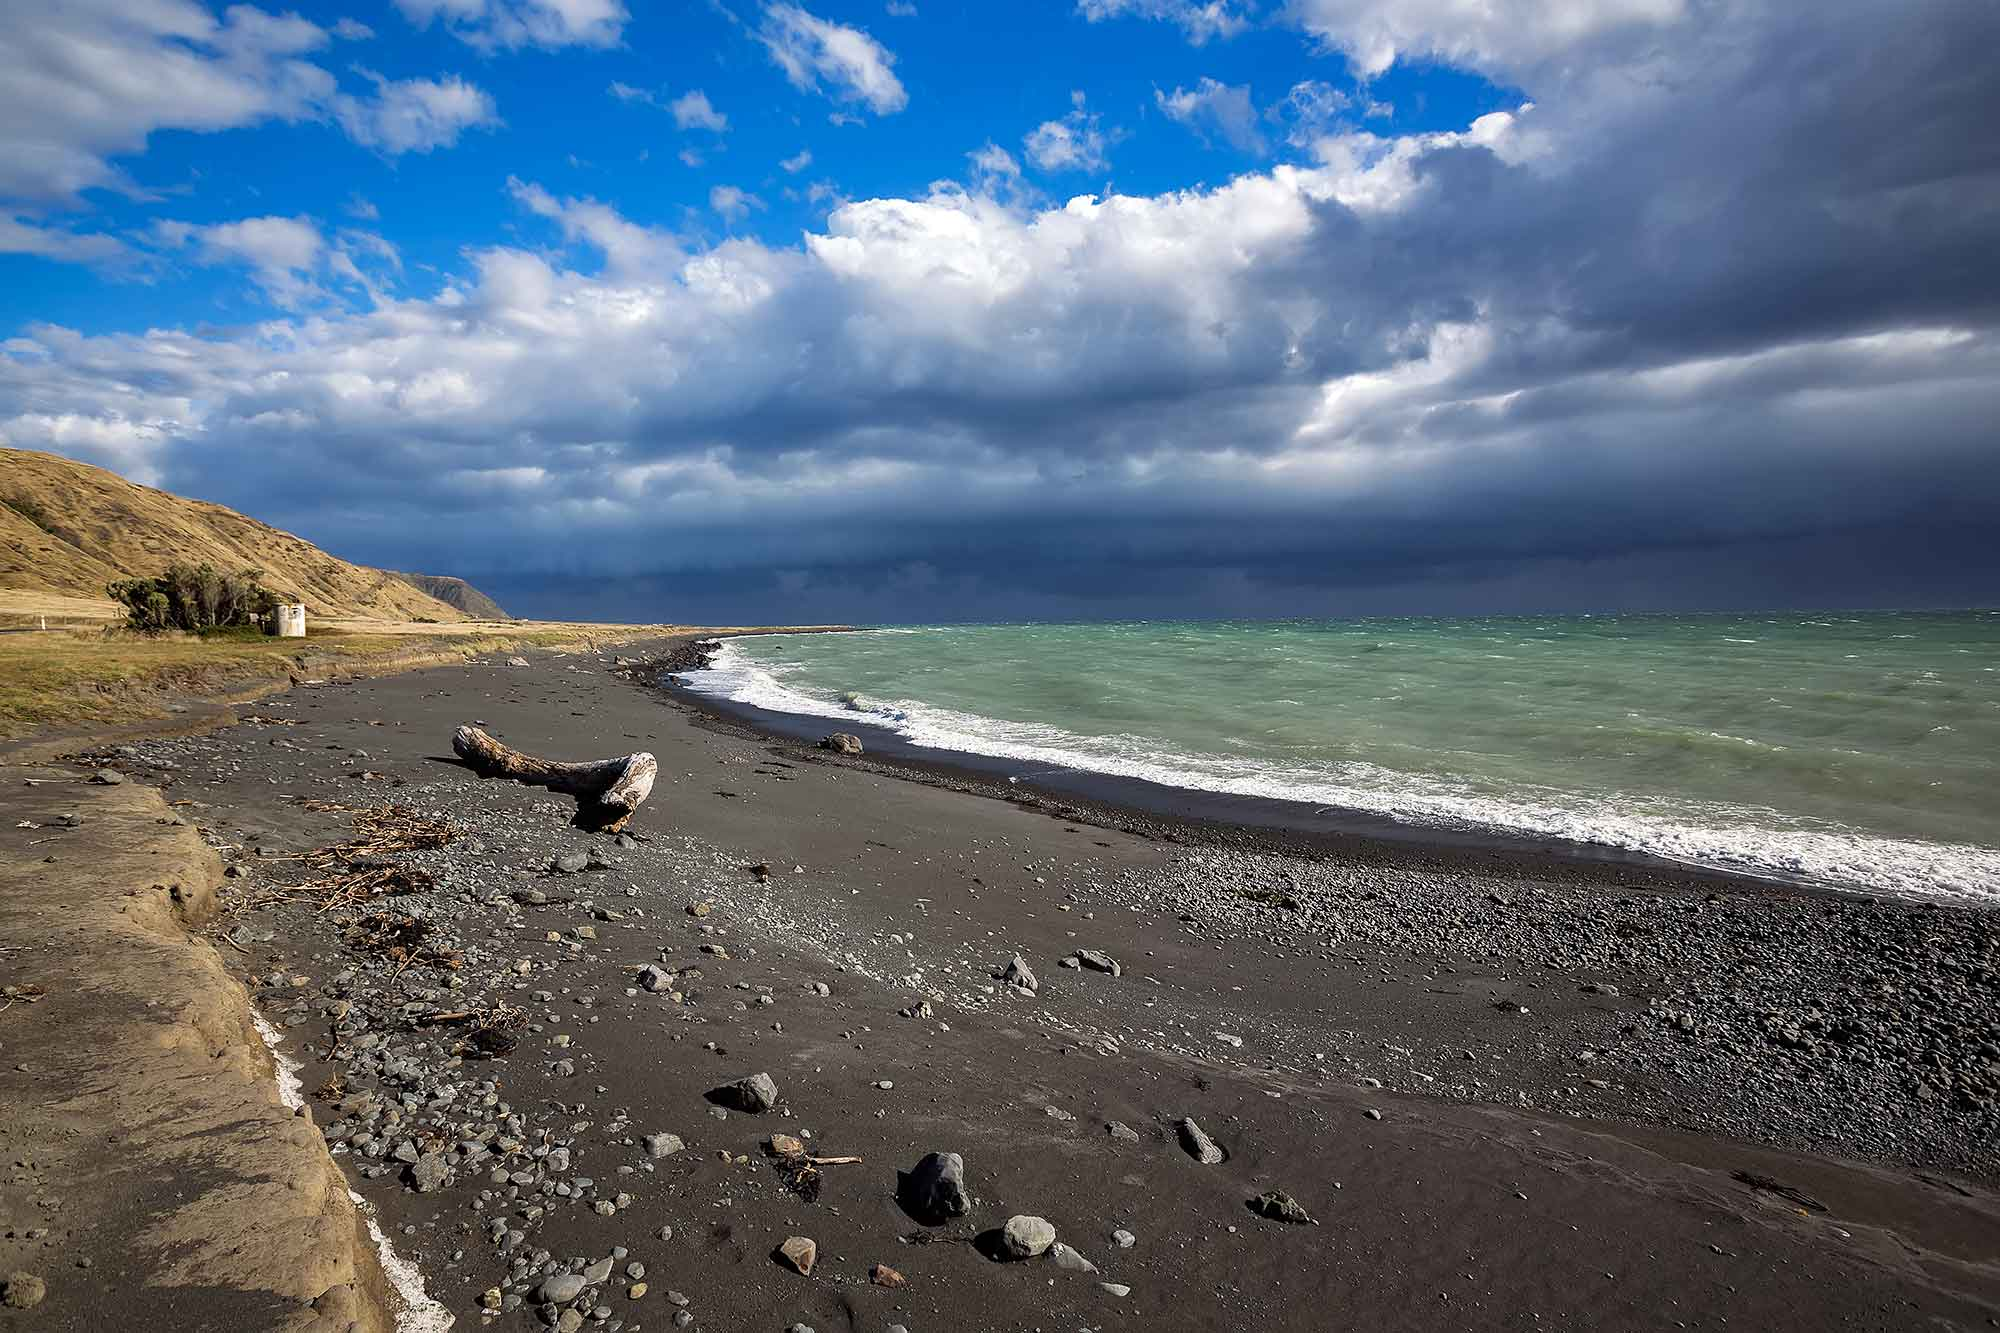 Black beach on Cape Palliser, New Zealand. © Ulli Maier & Nisa Maier